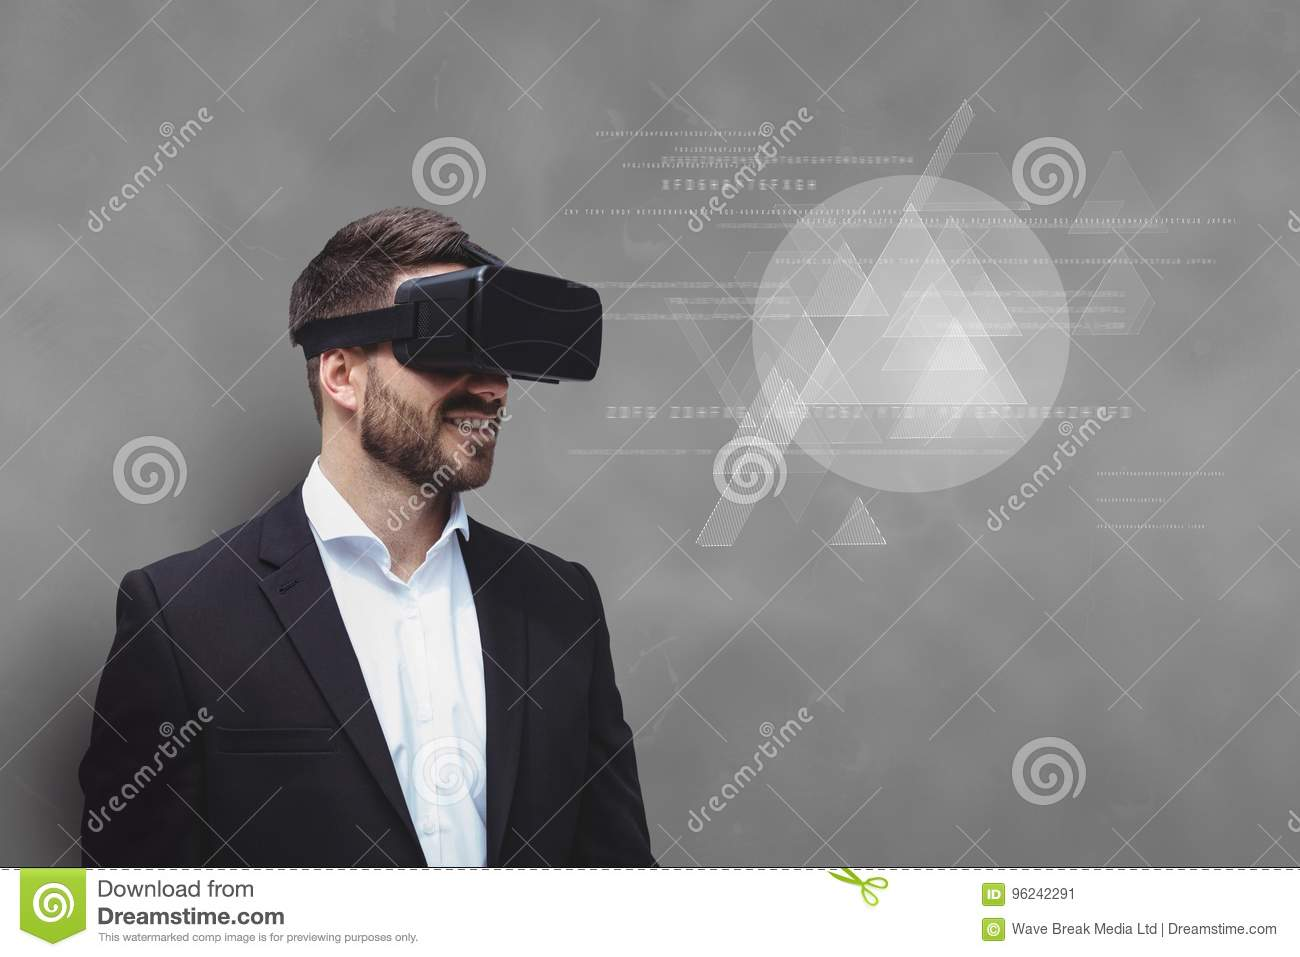 Man in VR headset looking at interface against grey background